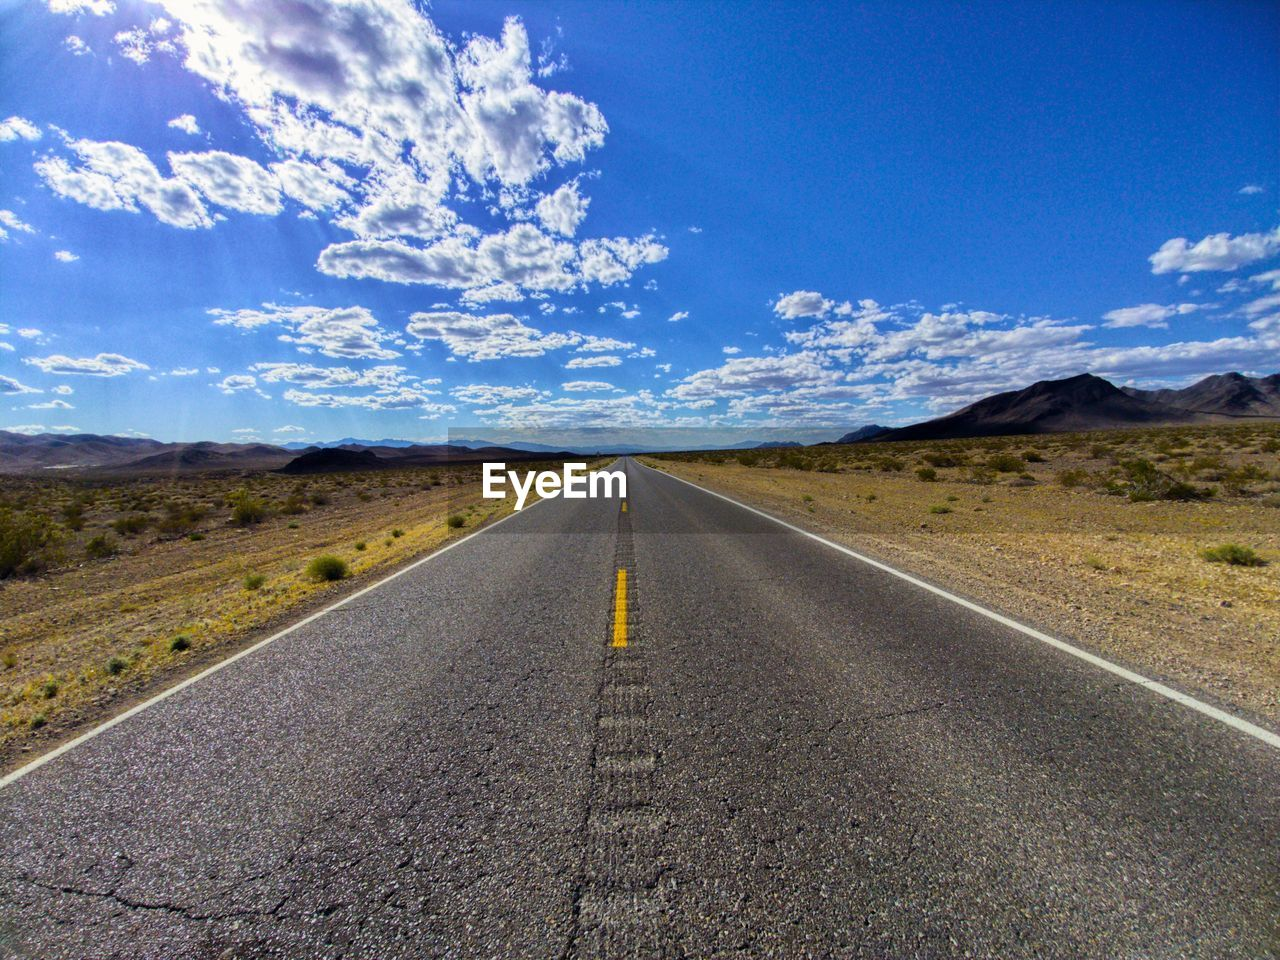 road, sky, transportation, the way forward, direction, cloud - sky, marking, diminishing perspective, vanishing point, road marking, landscape, sign, environment, nature, no people, symbol, tranquil scene, scenics - nature, tranquility, day, outdoors, dividing line, straight, arid climate